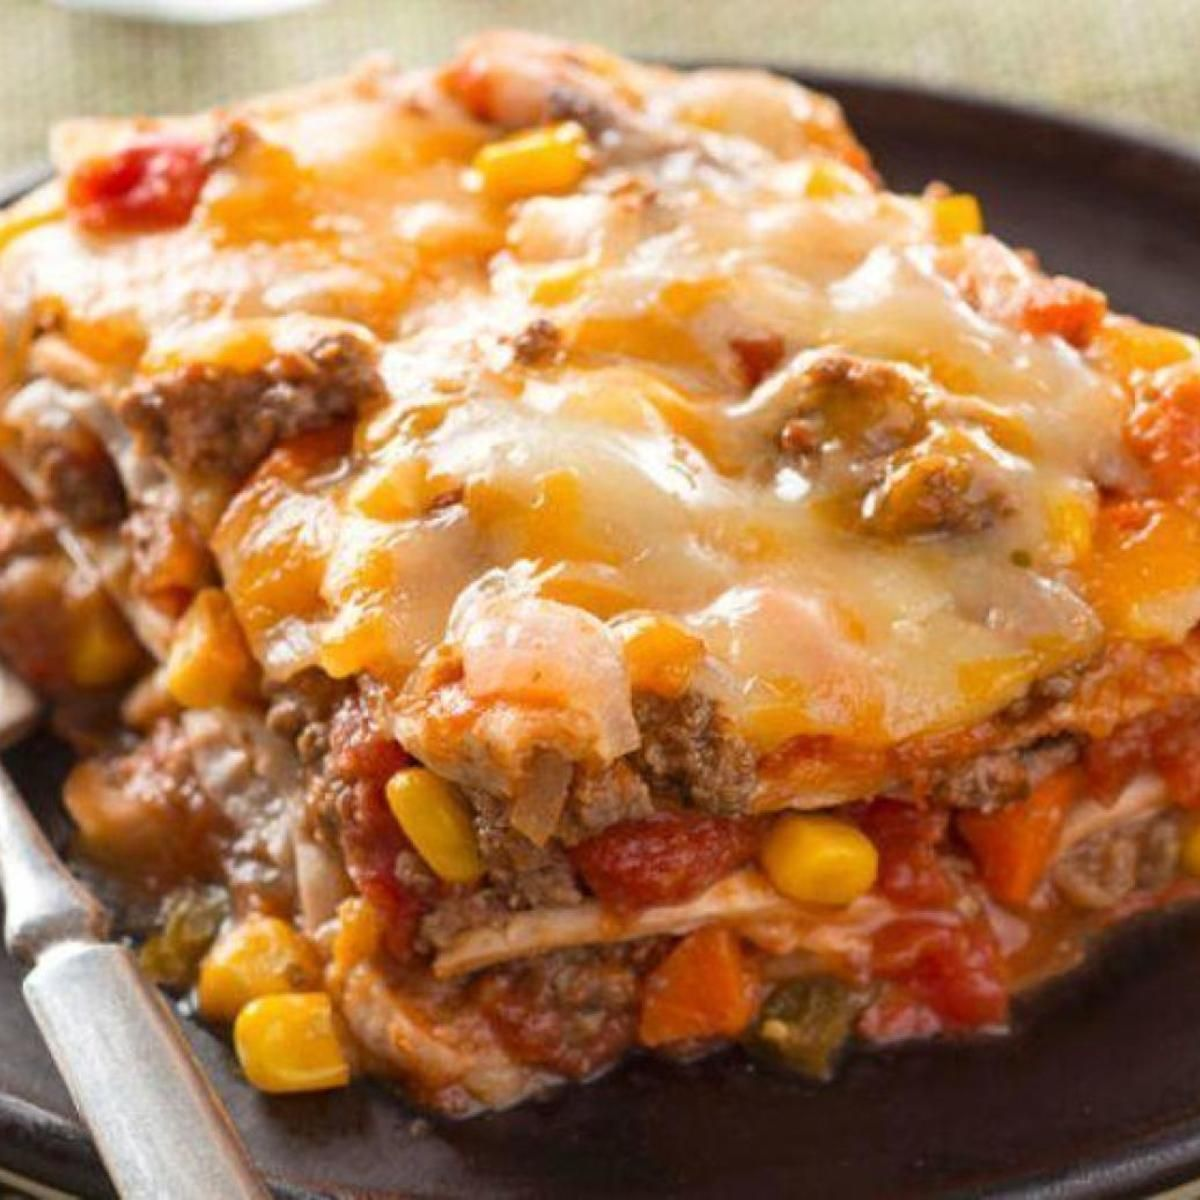 Best Layered Burrito Bake Recipe Recipe Recipes Kraft Recipes Burrito Bake Recipe